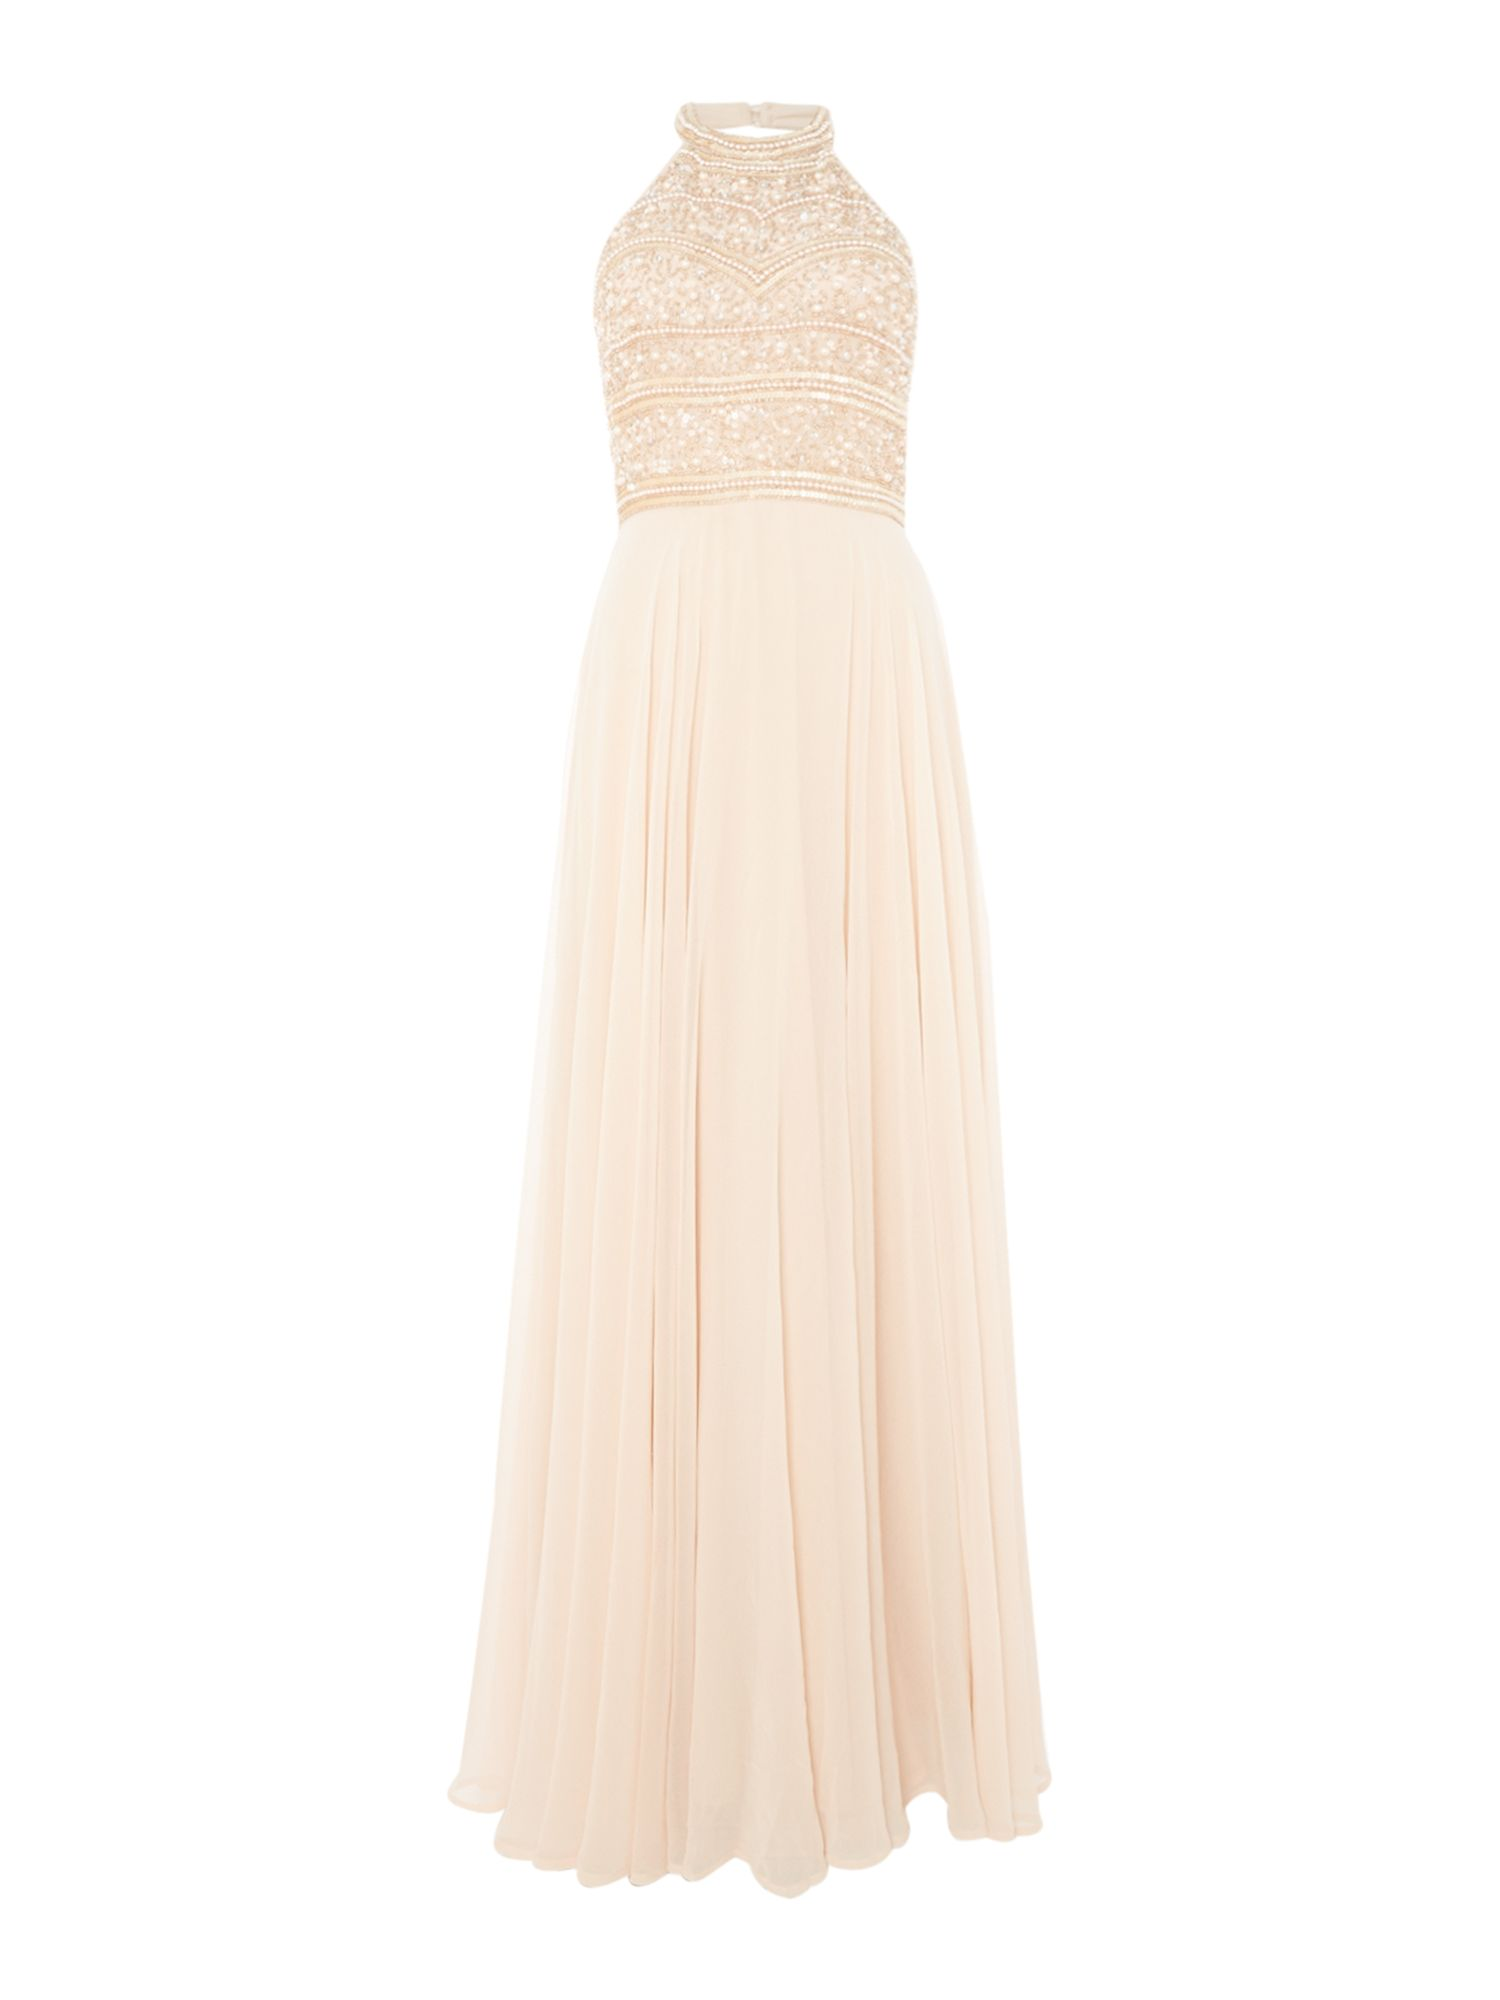 Lace and Beads High neck embellished gown, Nude